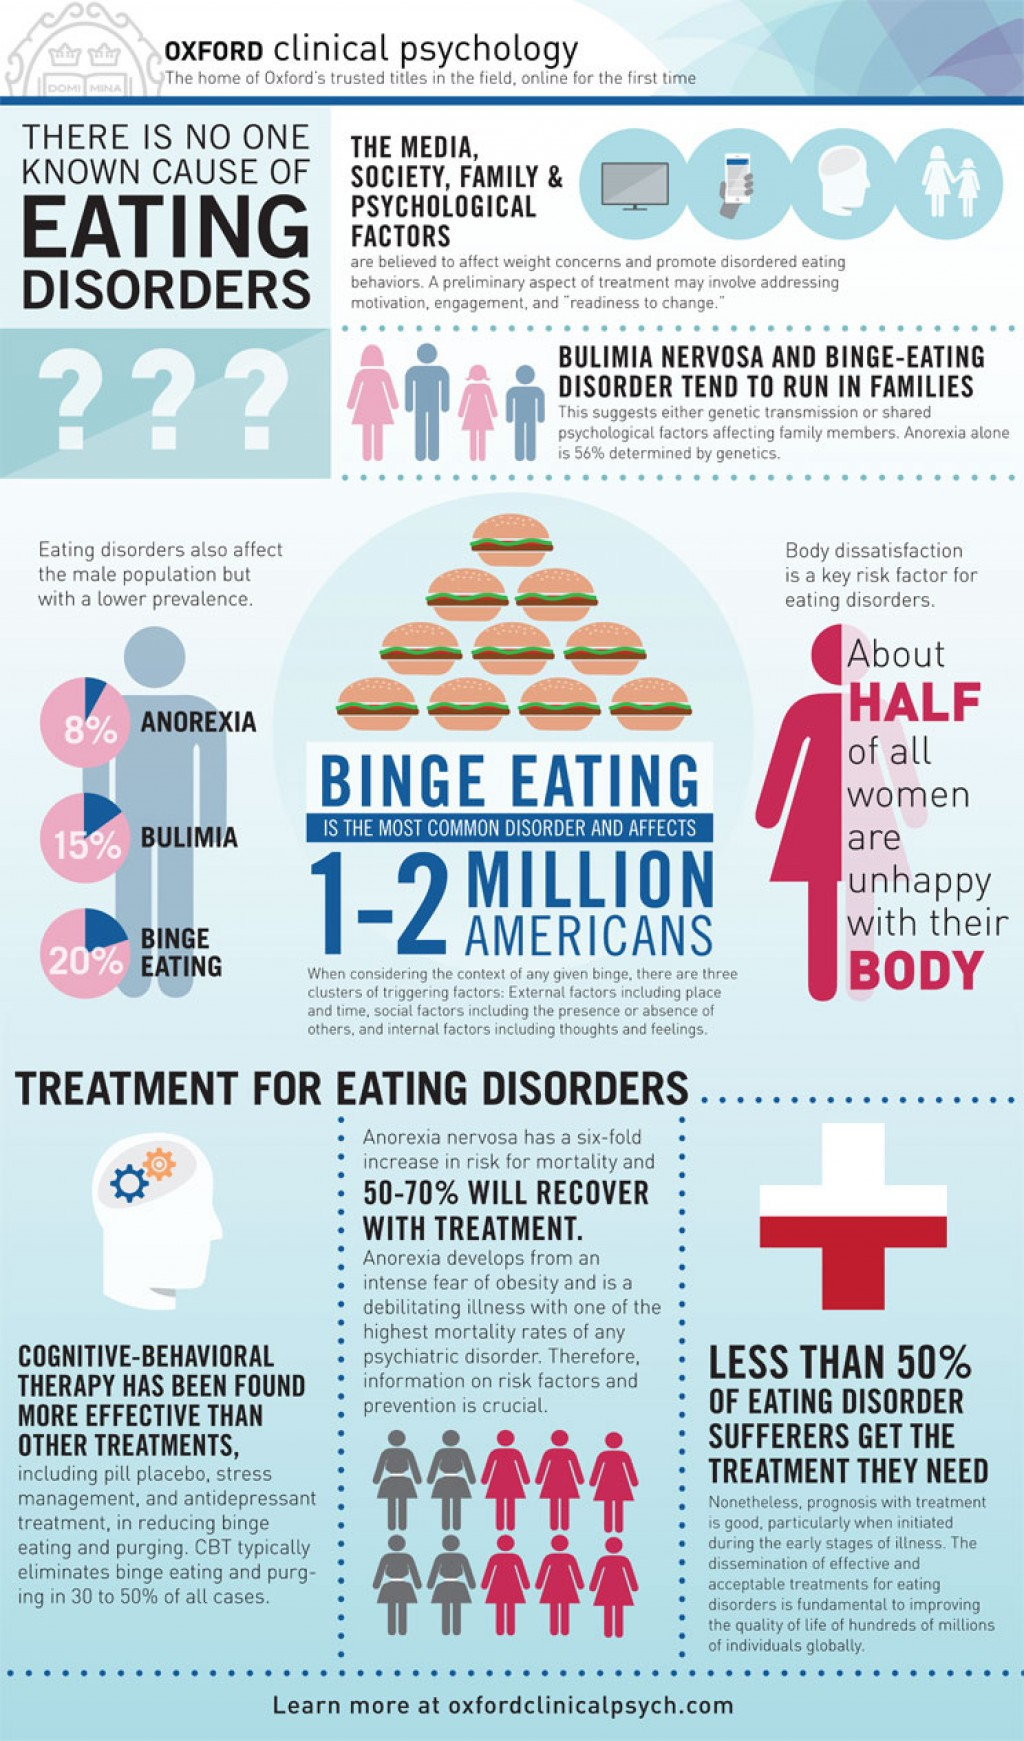 002 Research Paper Oup Ocp Infographic 03 Psychological On Eating Imposing Disorders Psychology Topics Large